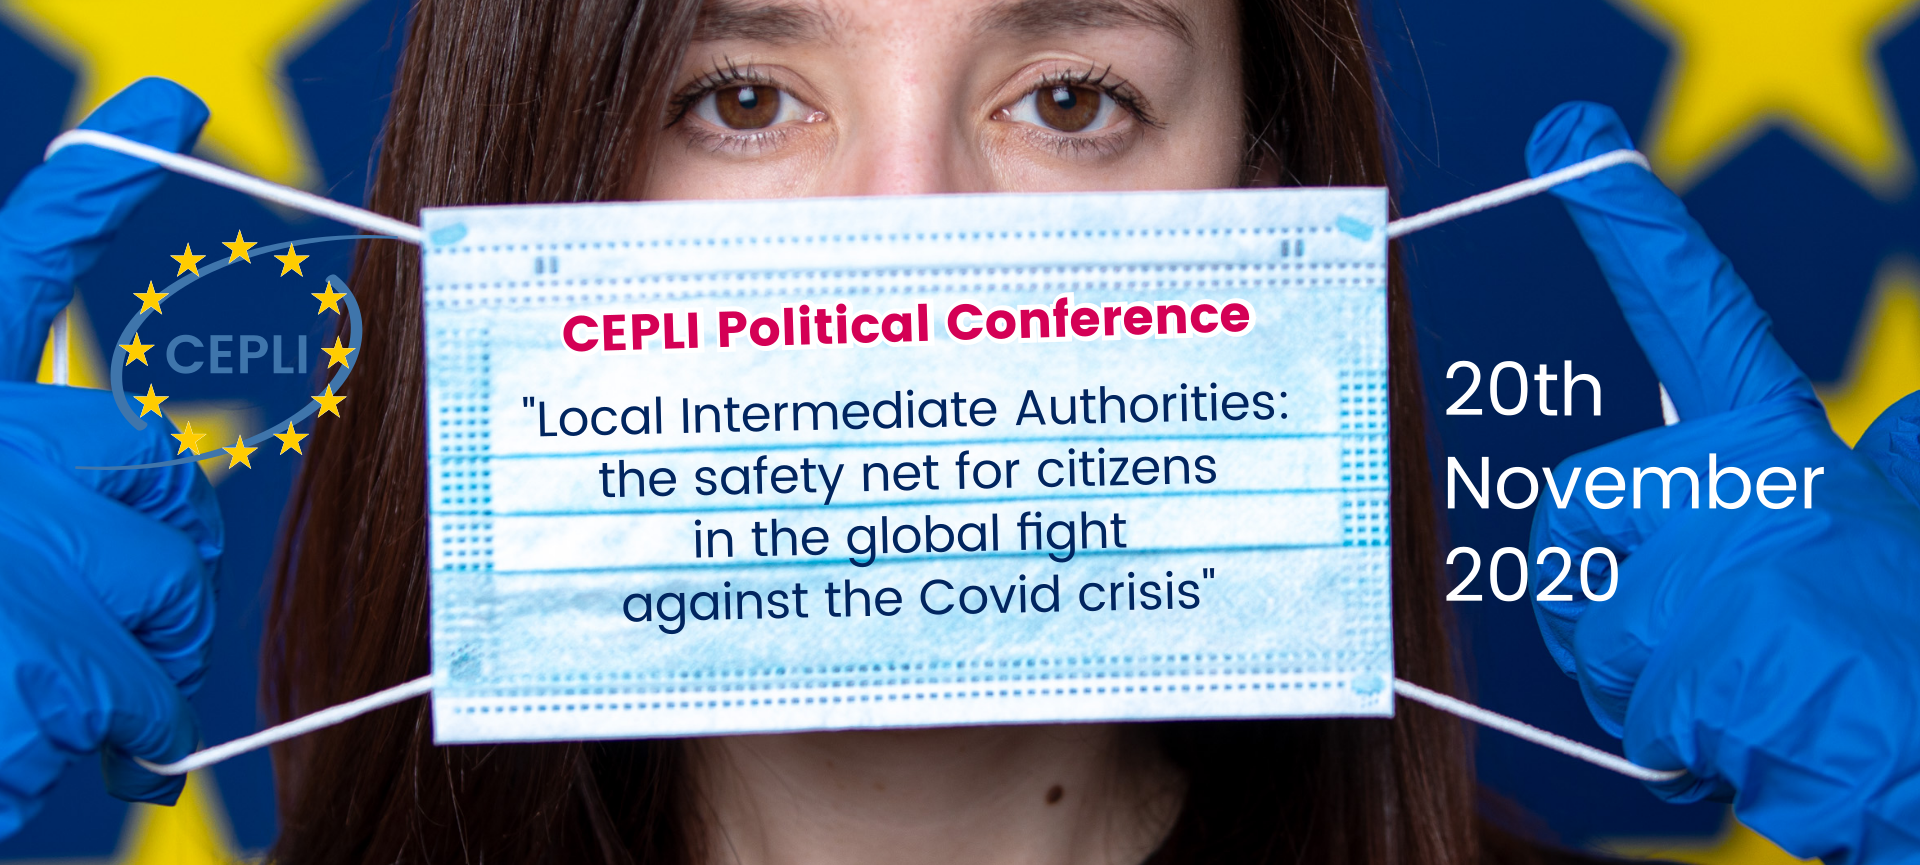 CEPLI Political Conference